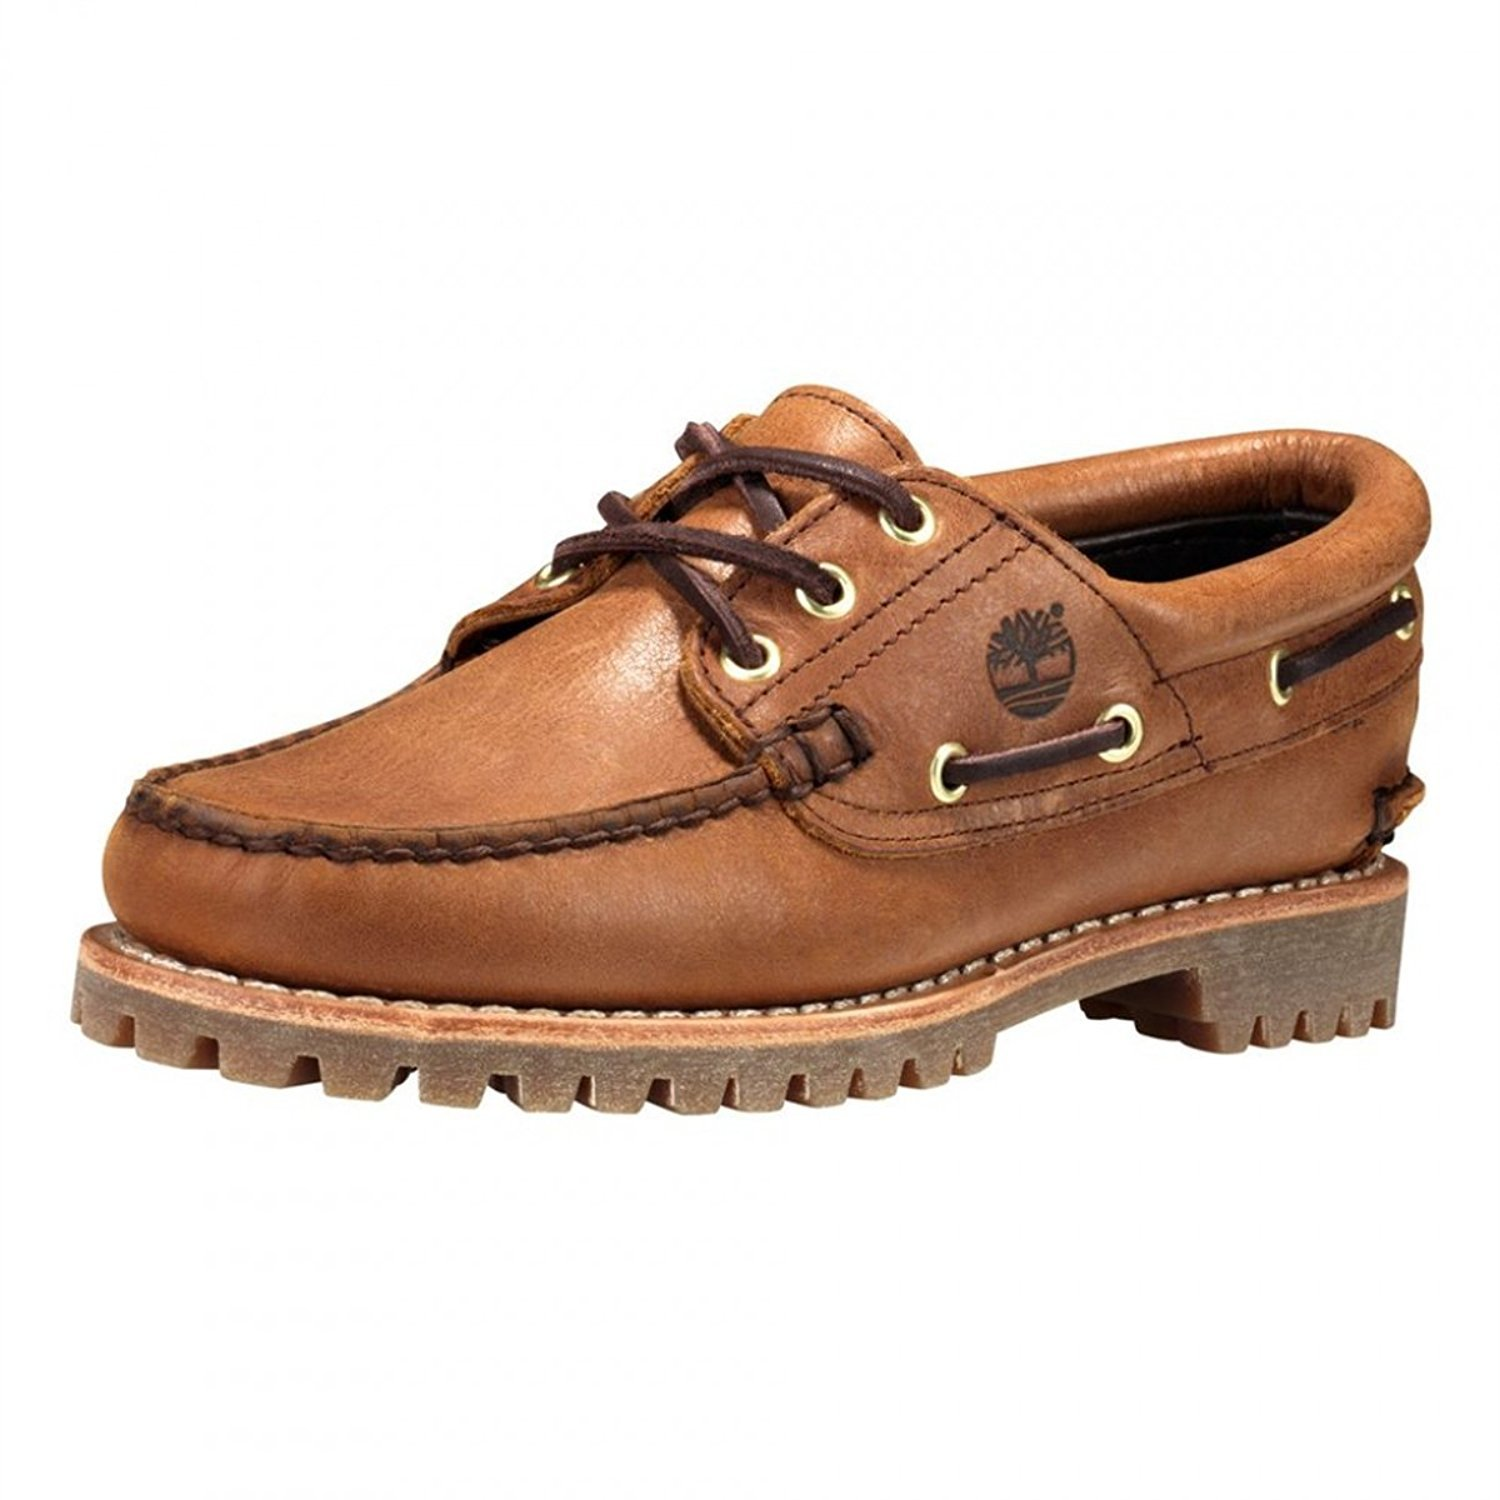 Mano Hechos Timberland Penny 3 A Mujer Noreen Mocasines Para nbsp;eye wXB0Op